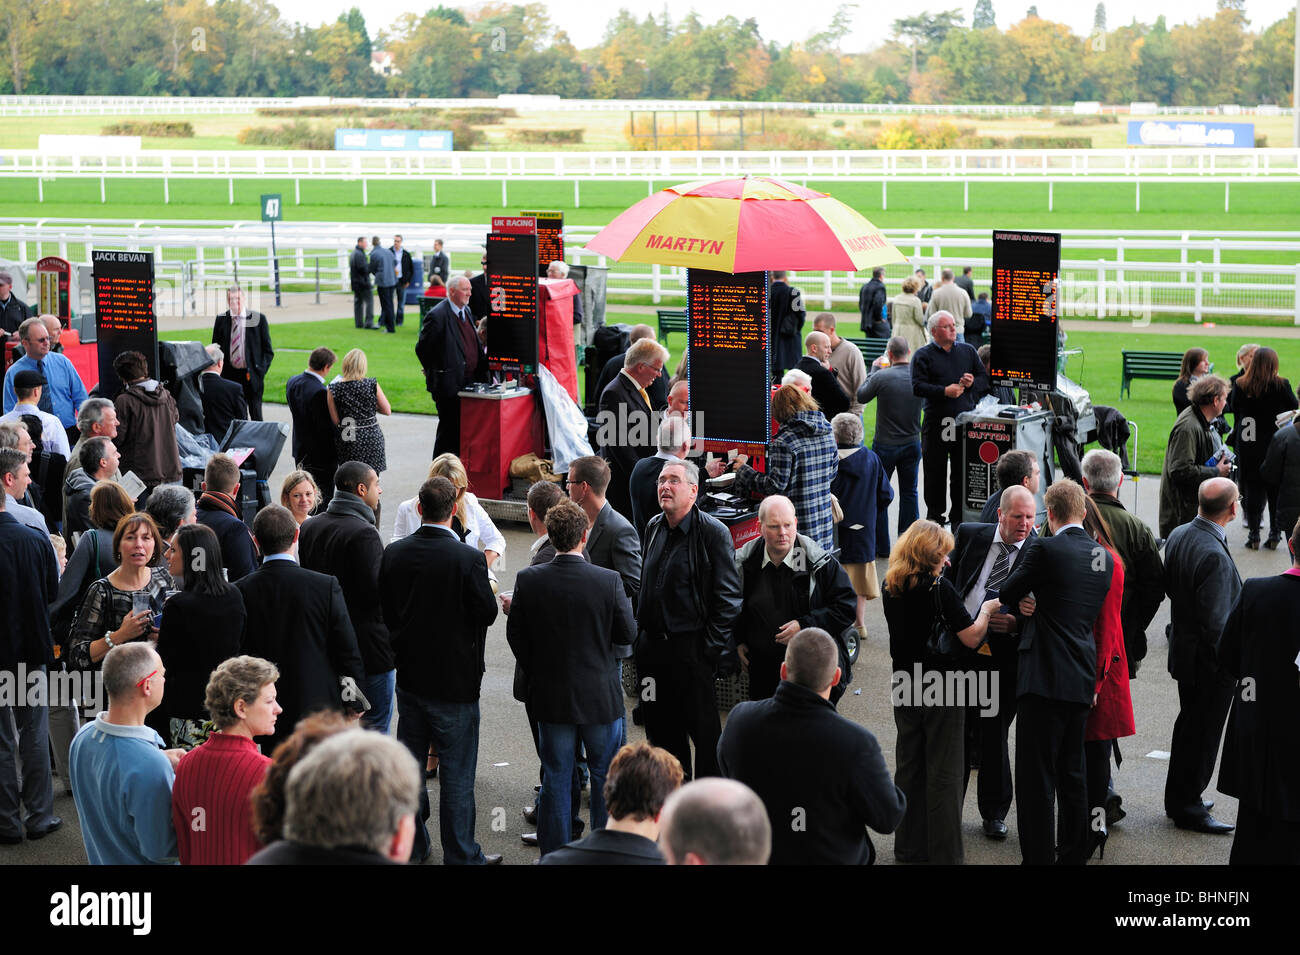 Bookies at Royal Ascot Race Course, Berkshire, England - Stock Image